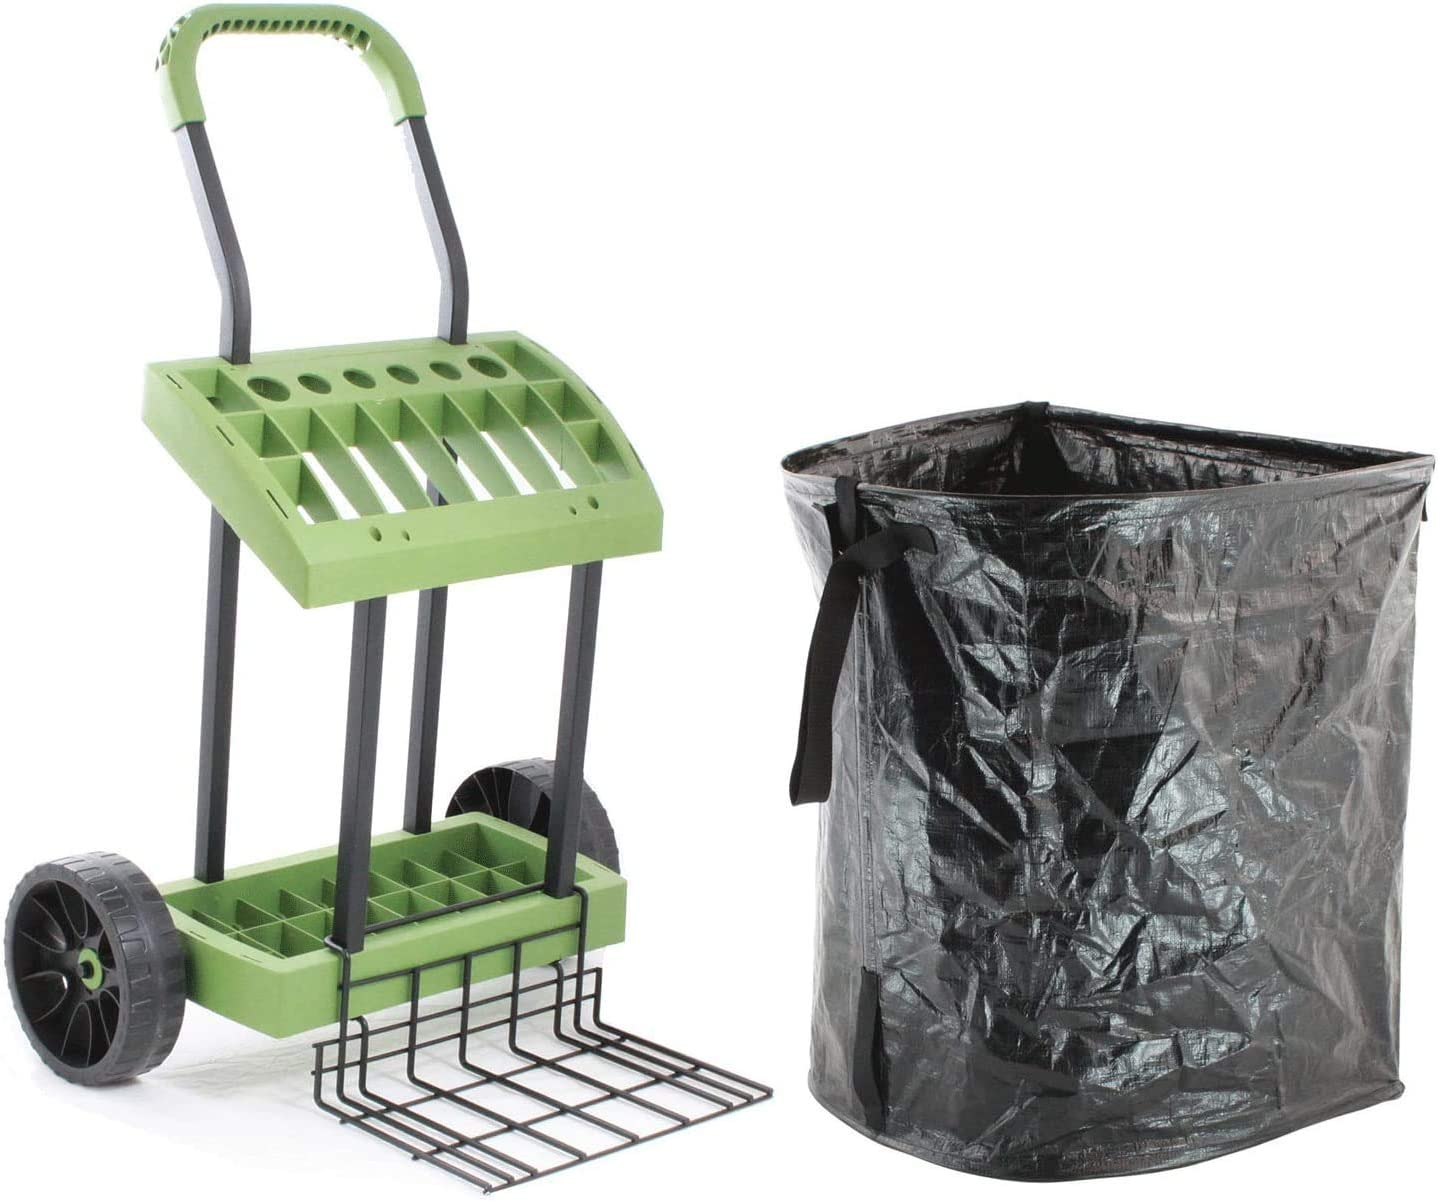 Lawn-Care Tool Box On Wheels with Leaf Collection Bag | Never Flat Tires & 120 Lb. Capacity Lift Plate | Mobile Yard Raking Project Organizer Caddy Cart | Made in USA by Vertex | Model SD590